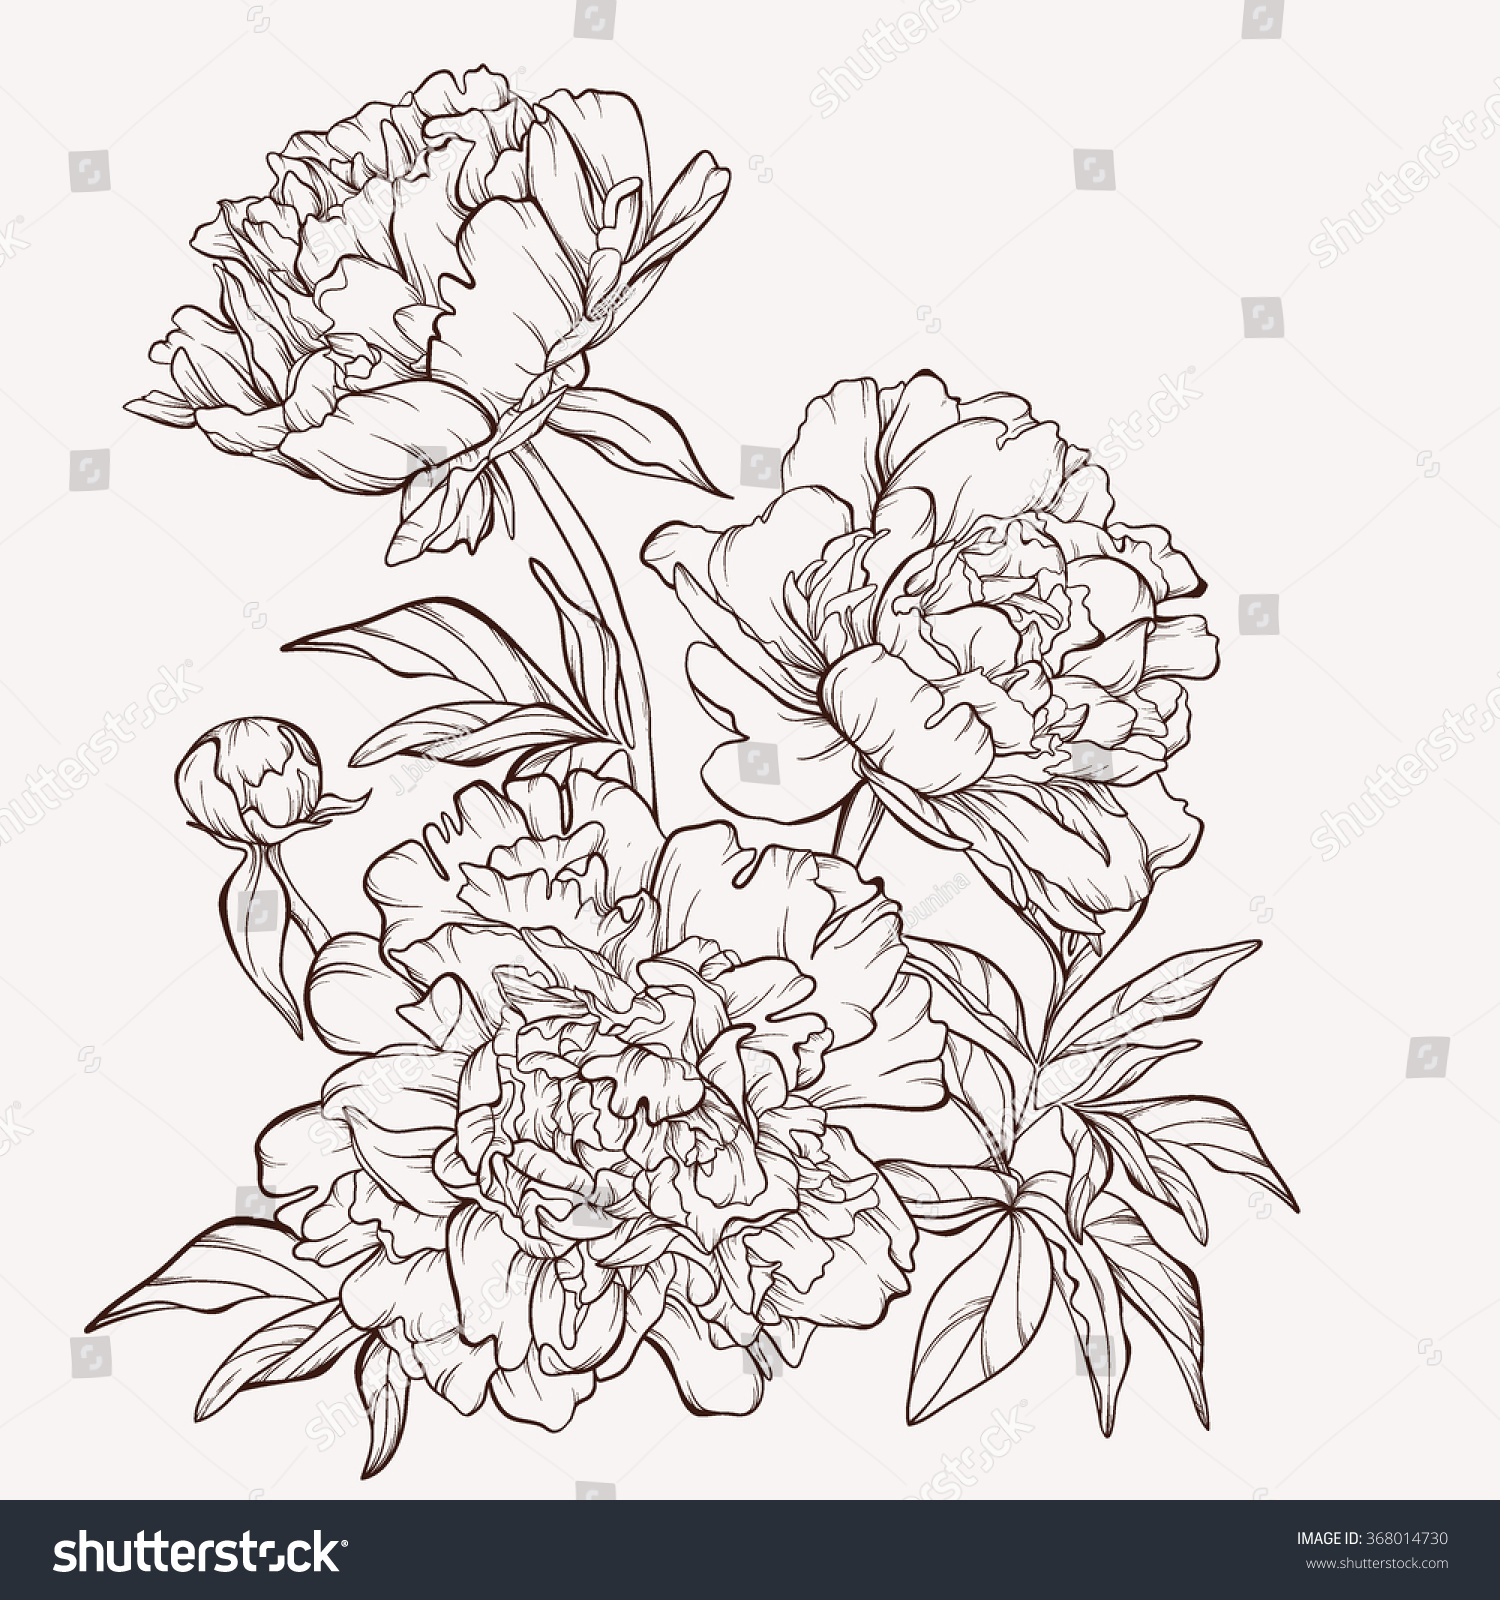 Peony flower isolated on white stock vector 368014568 shutterstock - Blossoming Peony Flowers On White Vector Illustration Perfect For Background Greeting Cards And Invitations